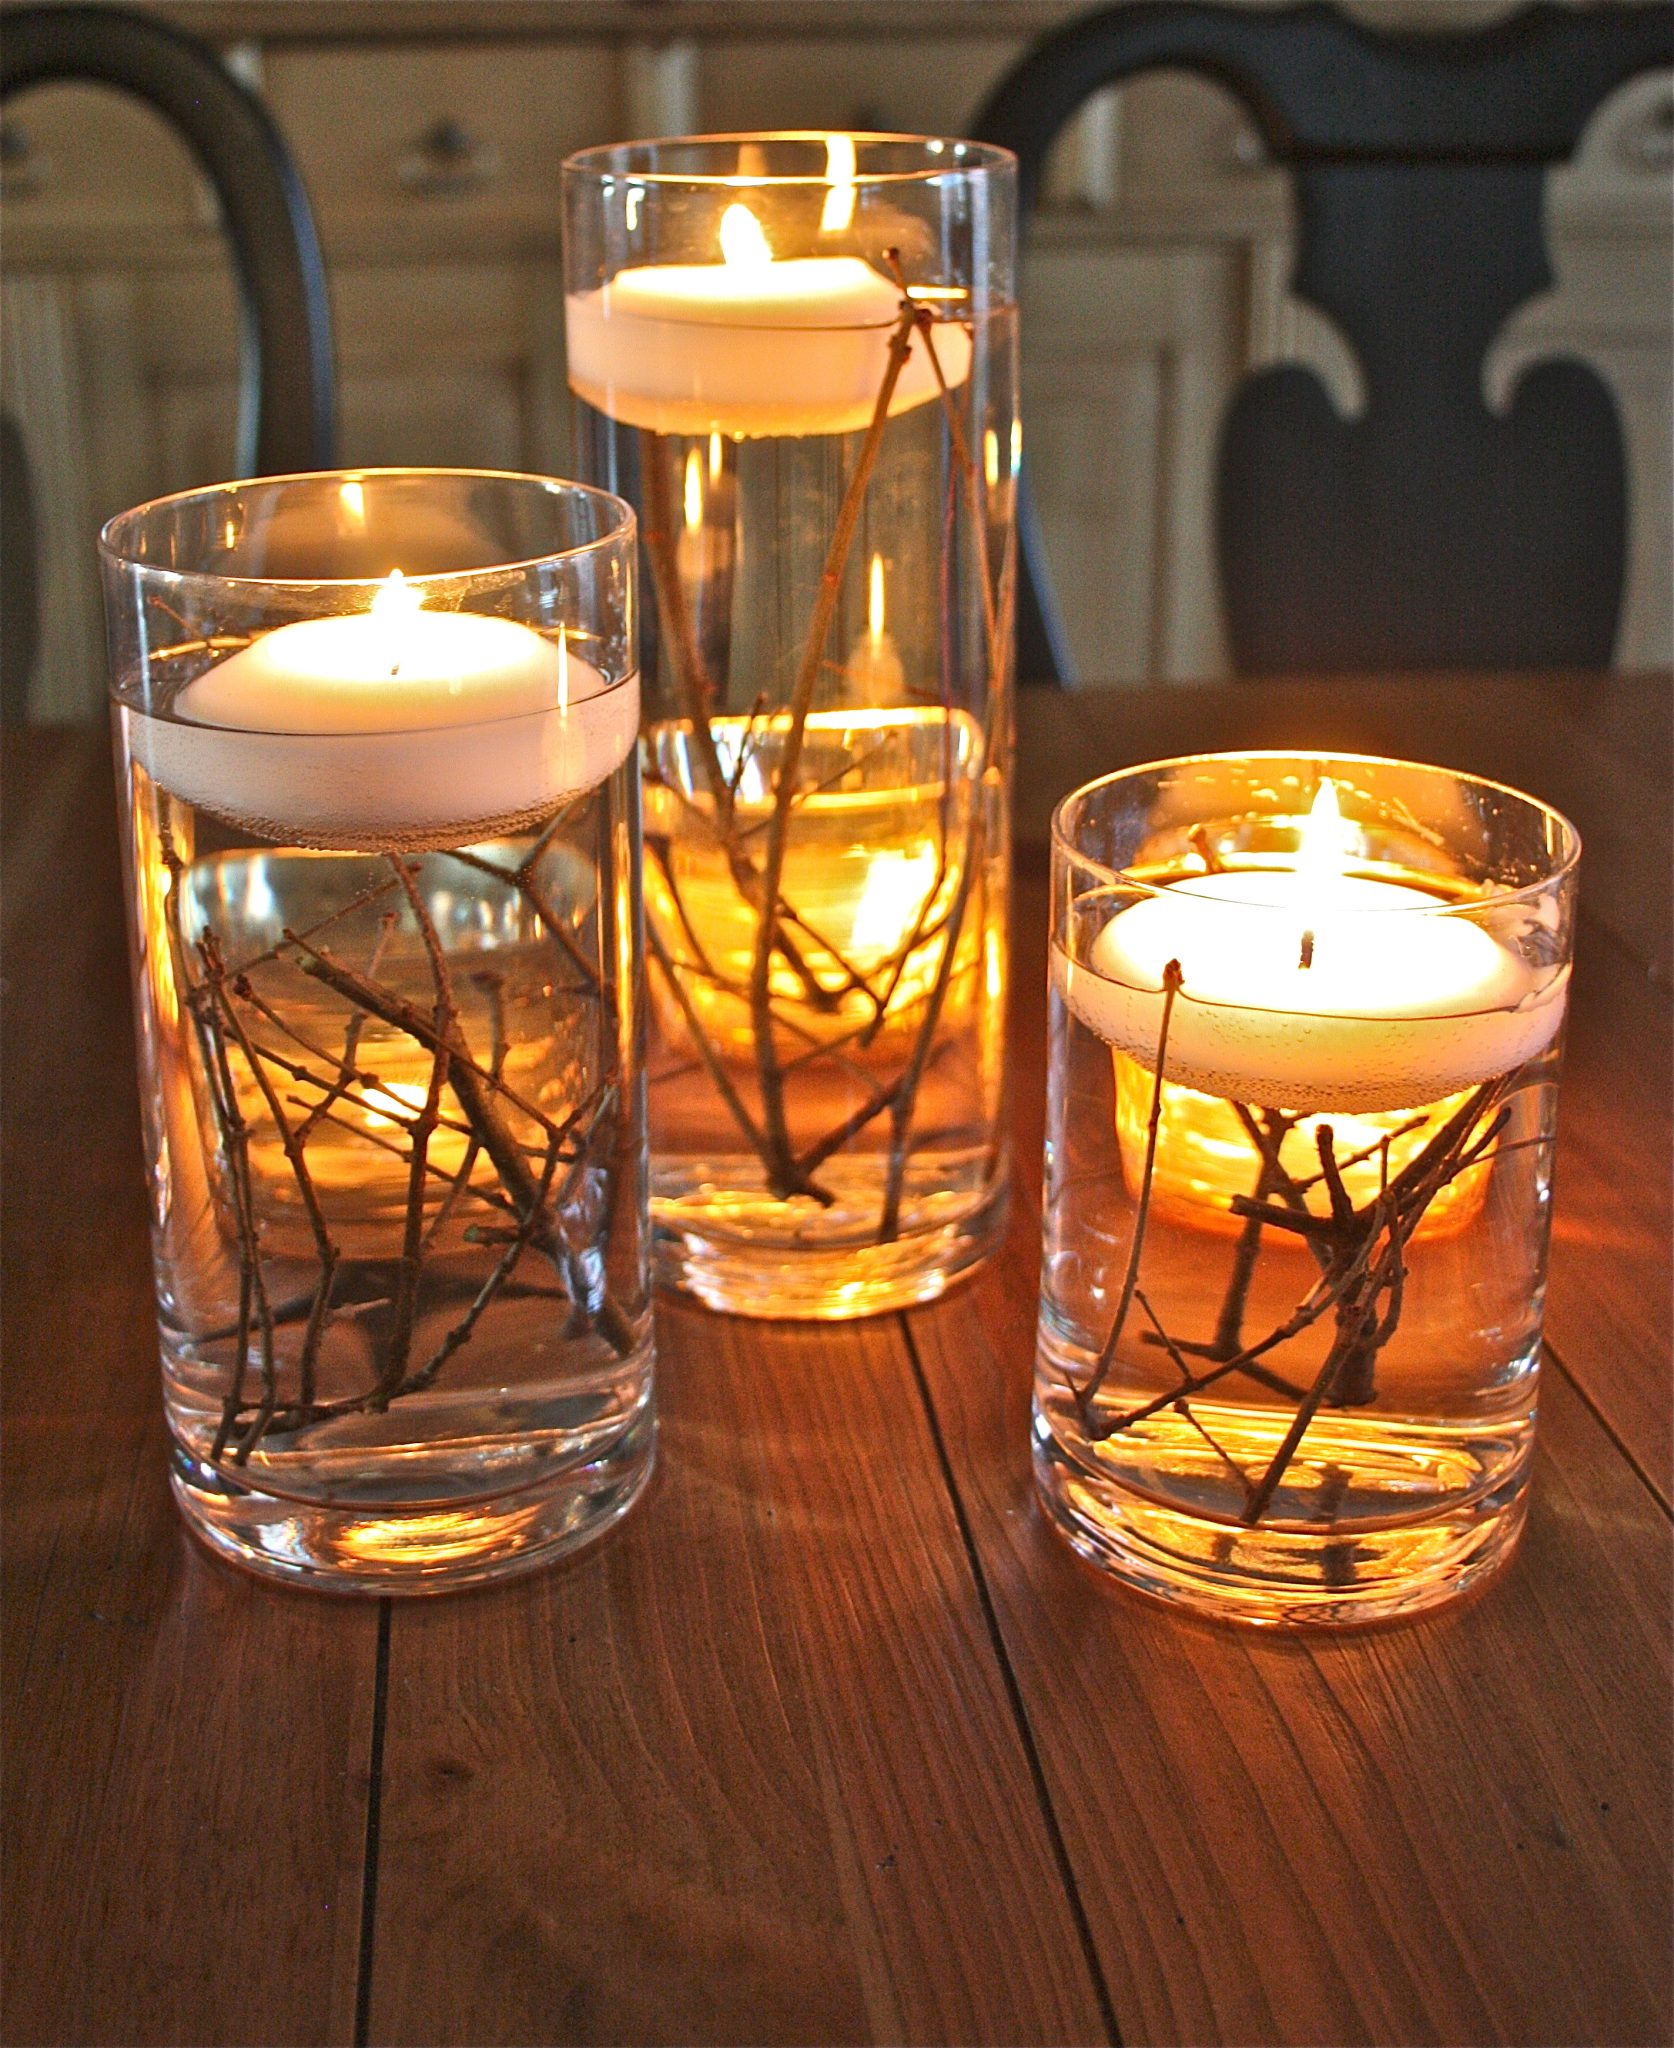 Candle projects.